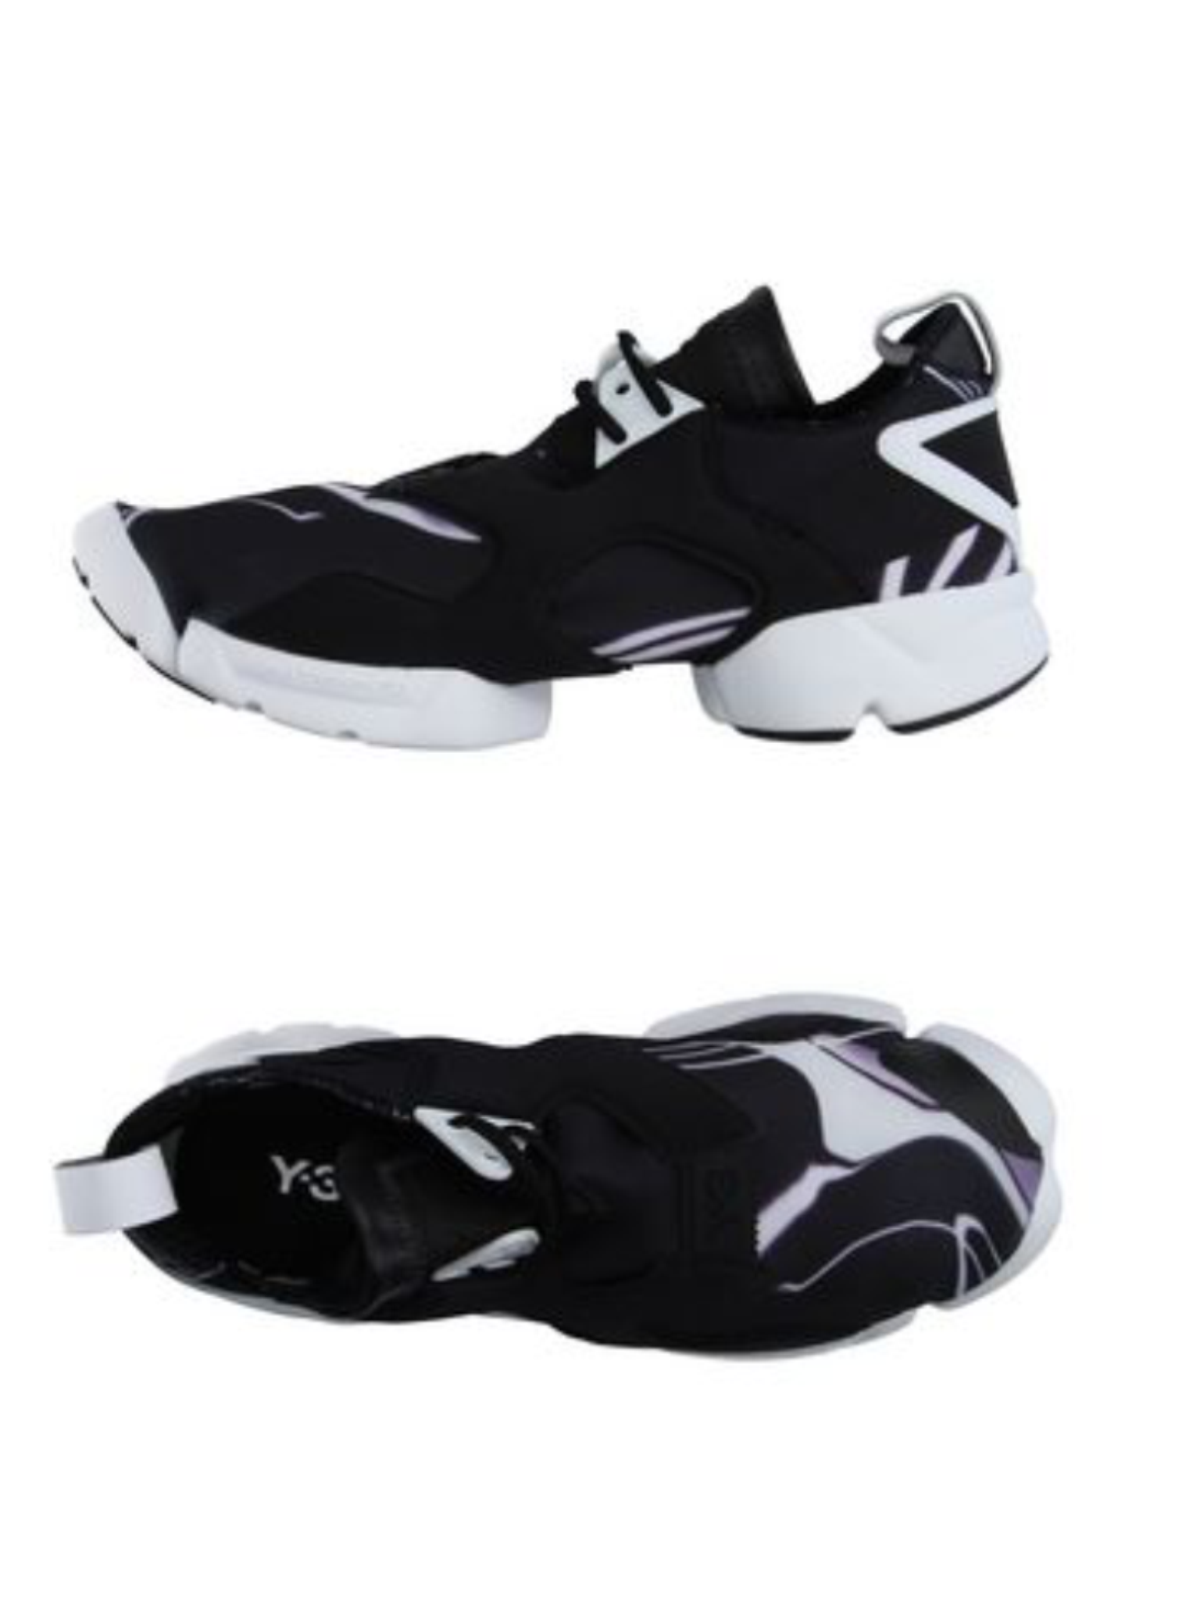 Y-3 by Yohji Yamamoto KOHNA Men's Flat Sneakers Two-Tone Textile Leather Size XL